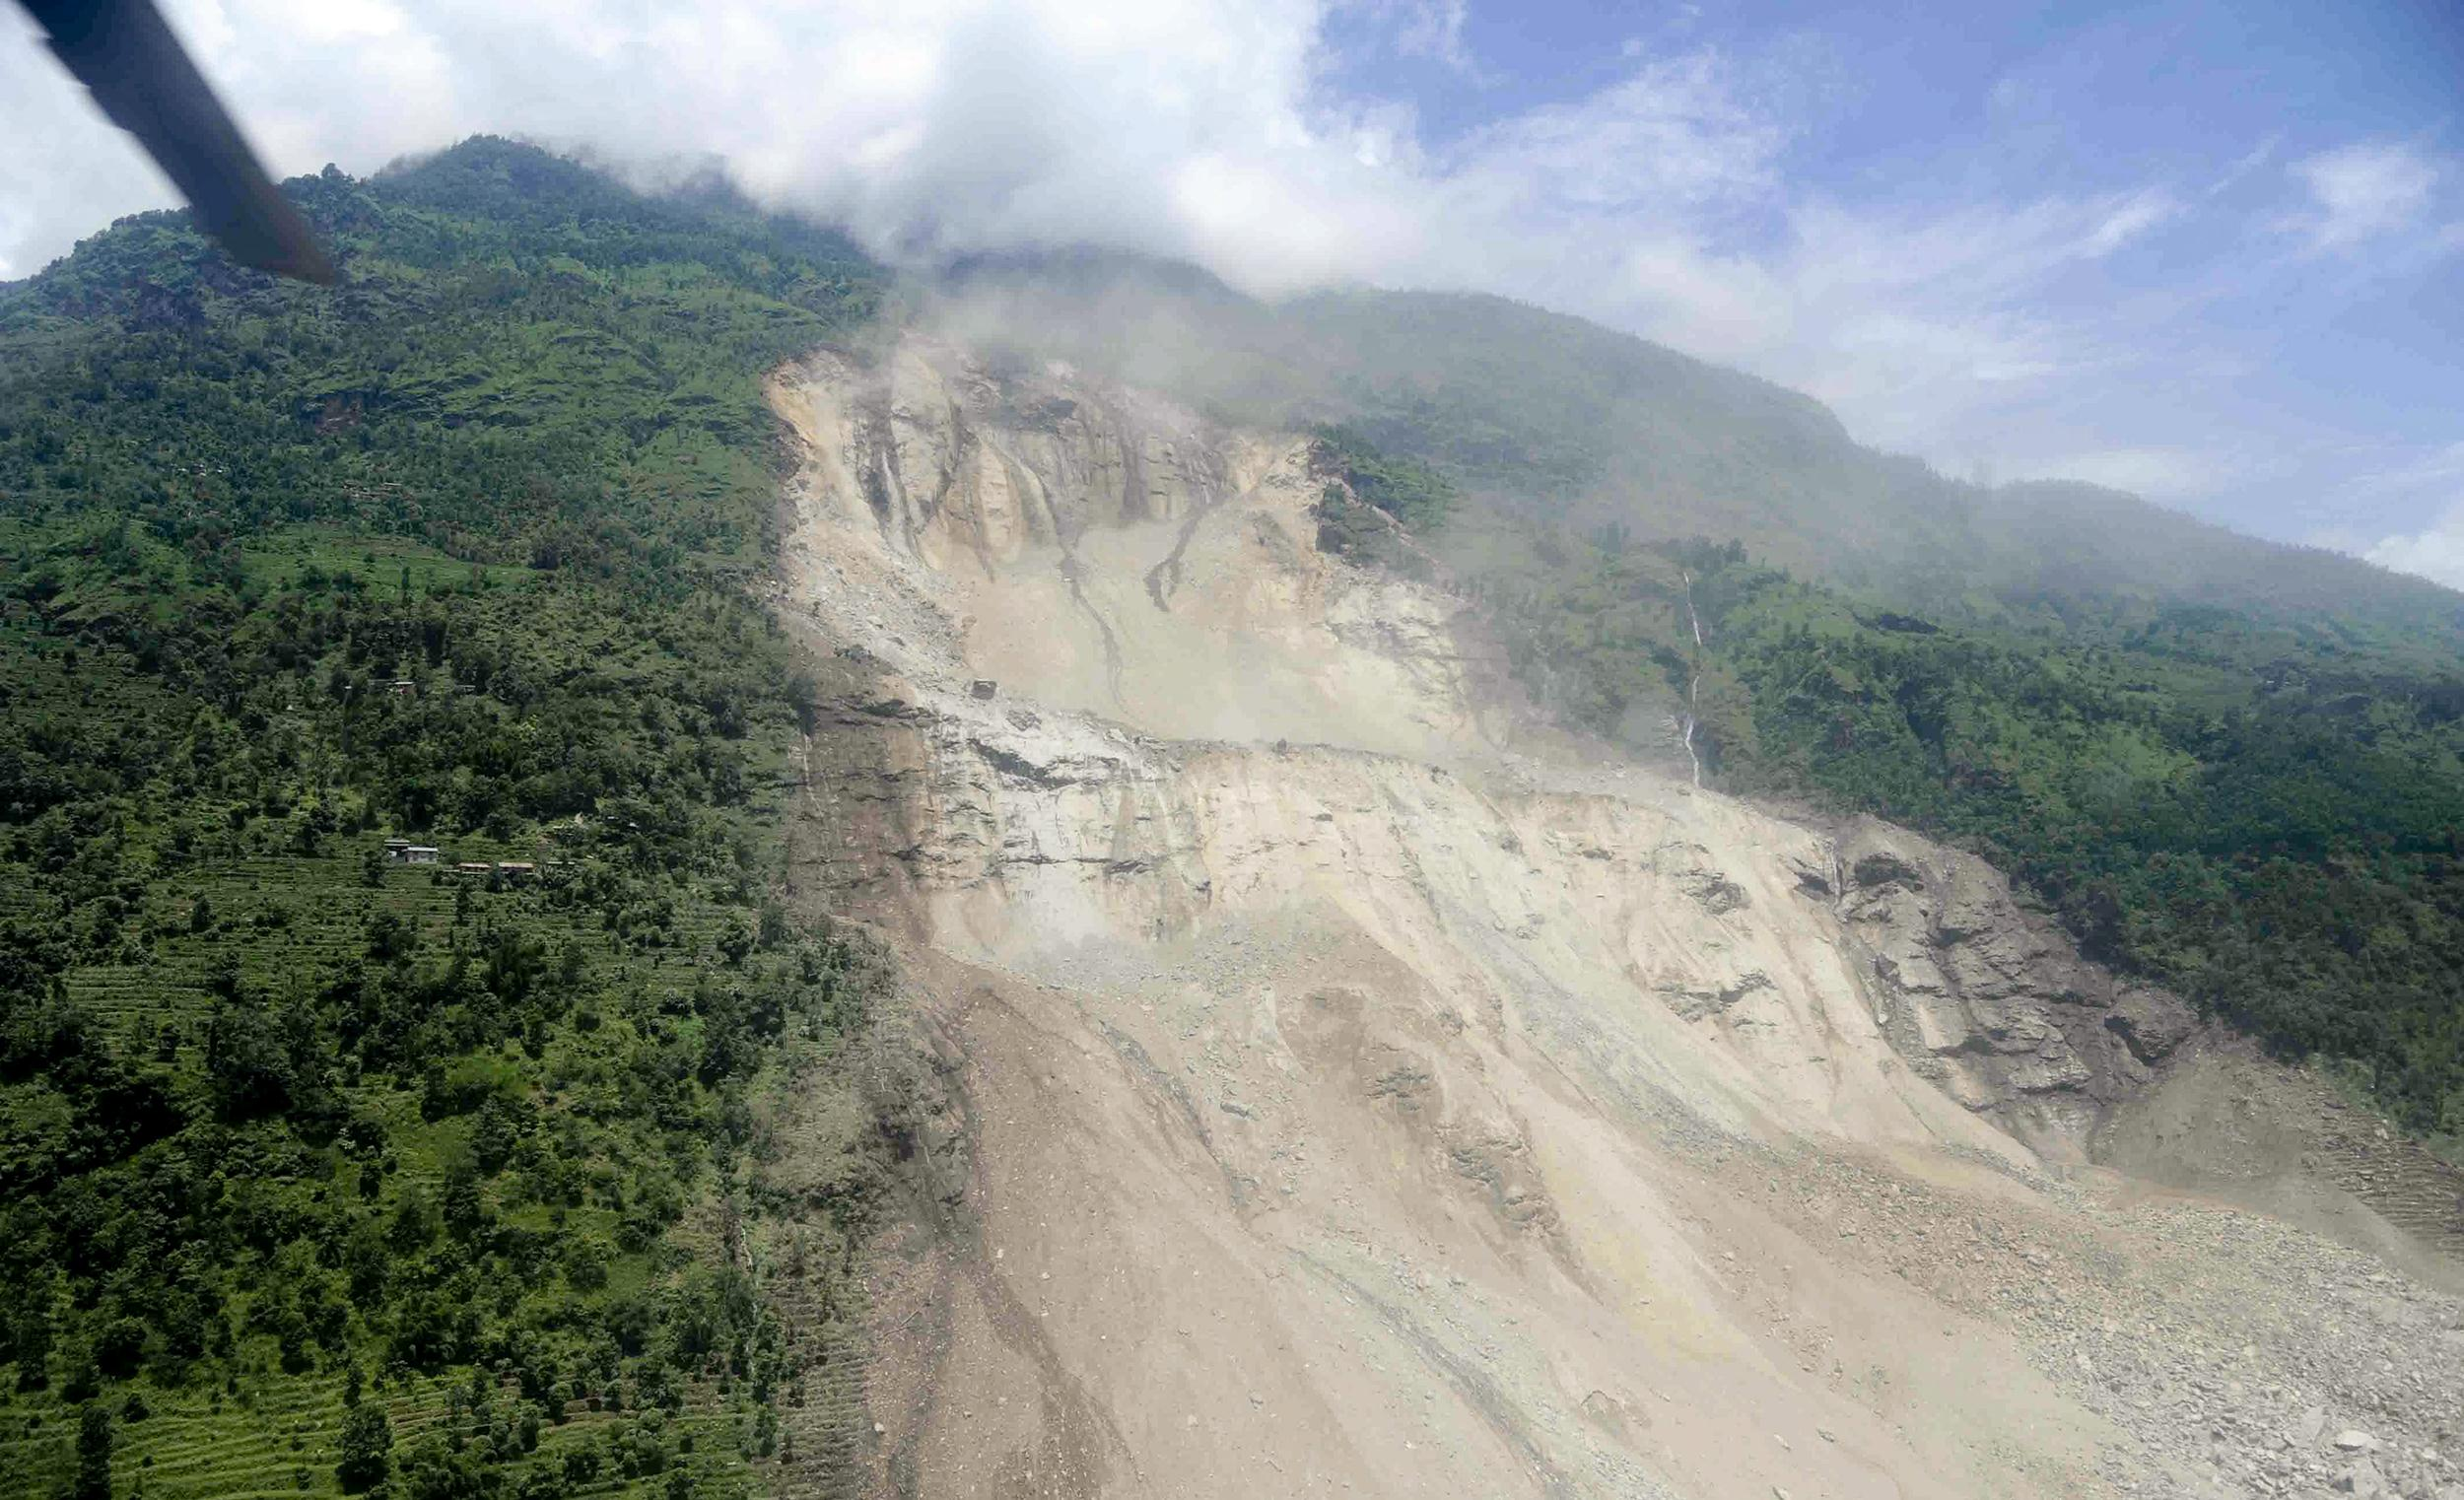 Forthcoming monsoon rains may complicate disaster relief for Monsoon de